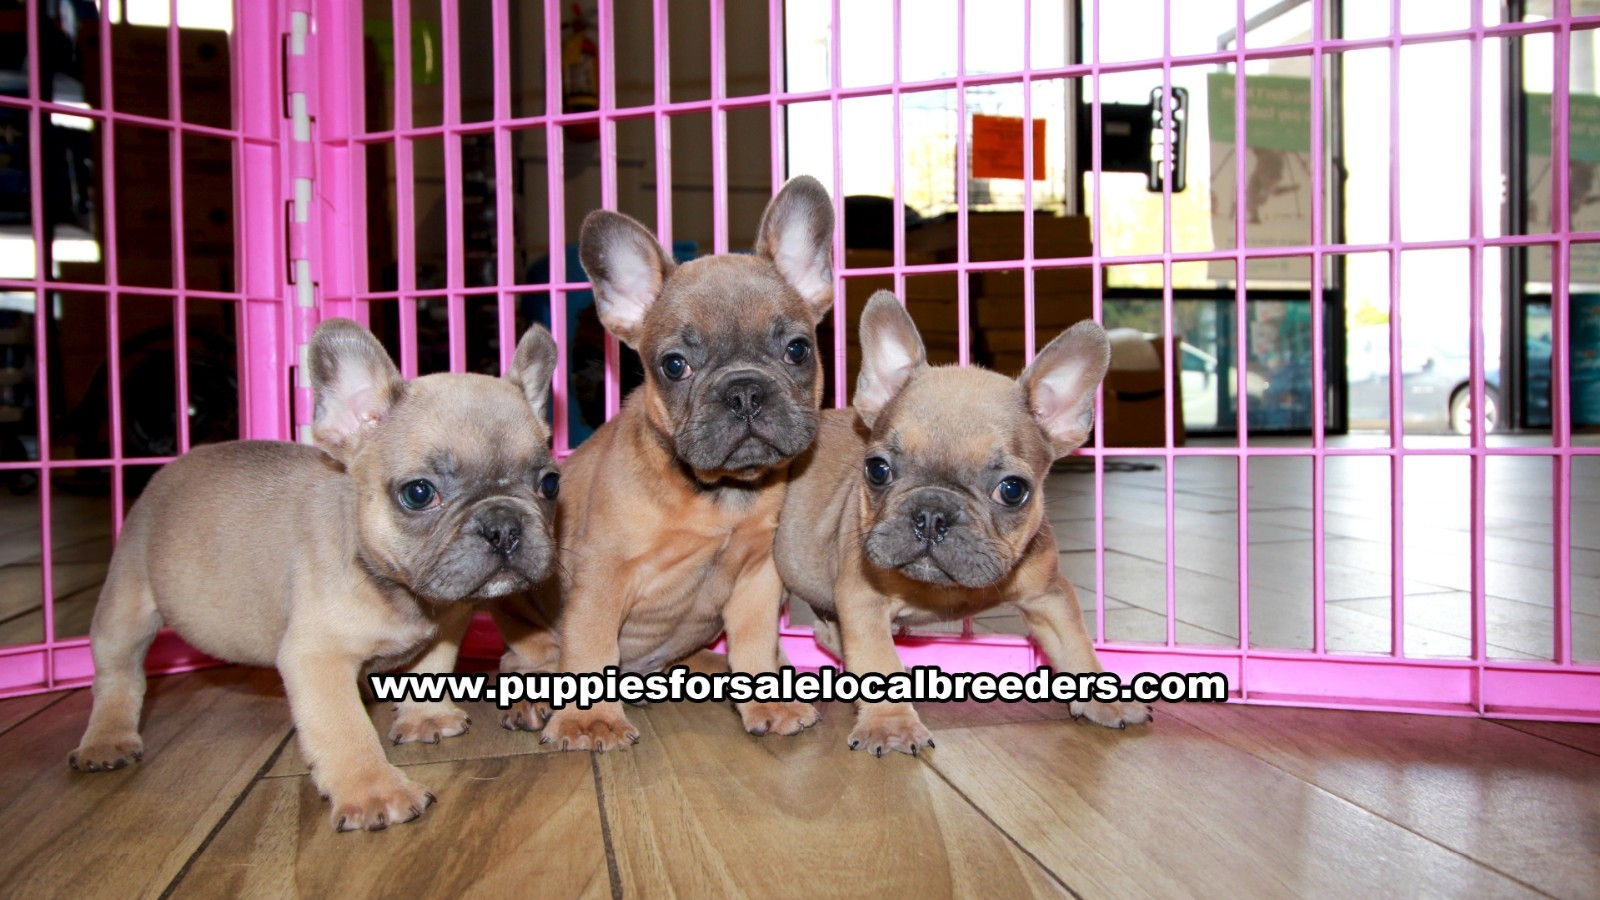 French Bulldog, Puppies For Sale In Georgia, Local Breeders, Near Atlanta, Ga